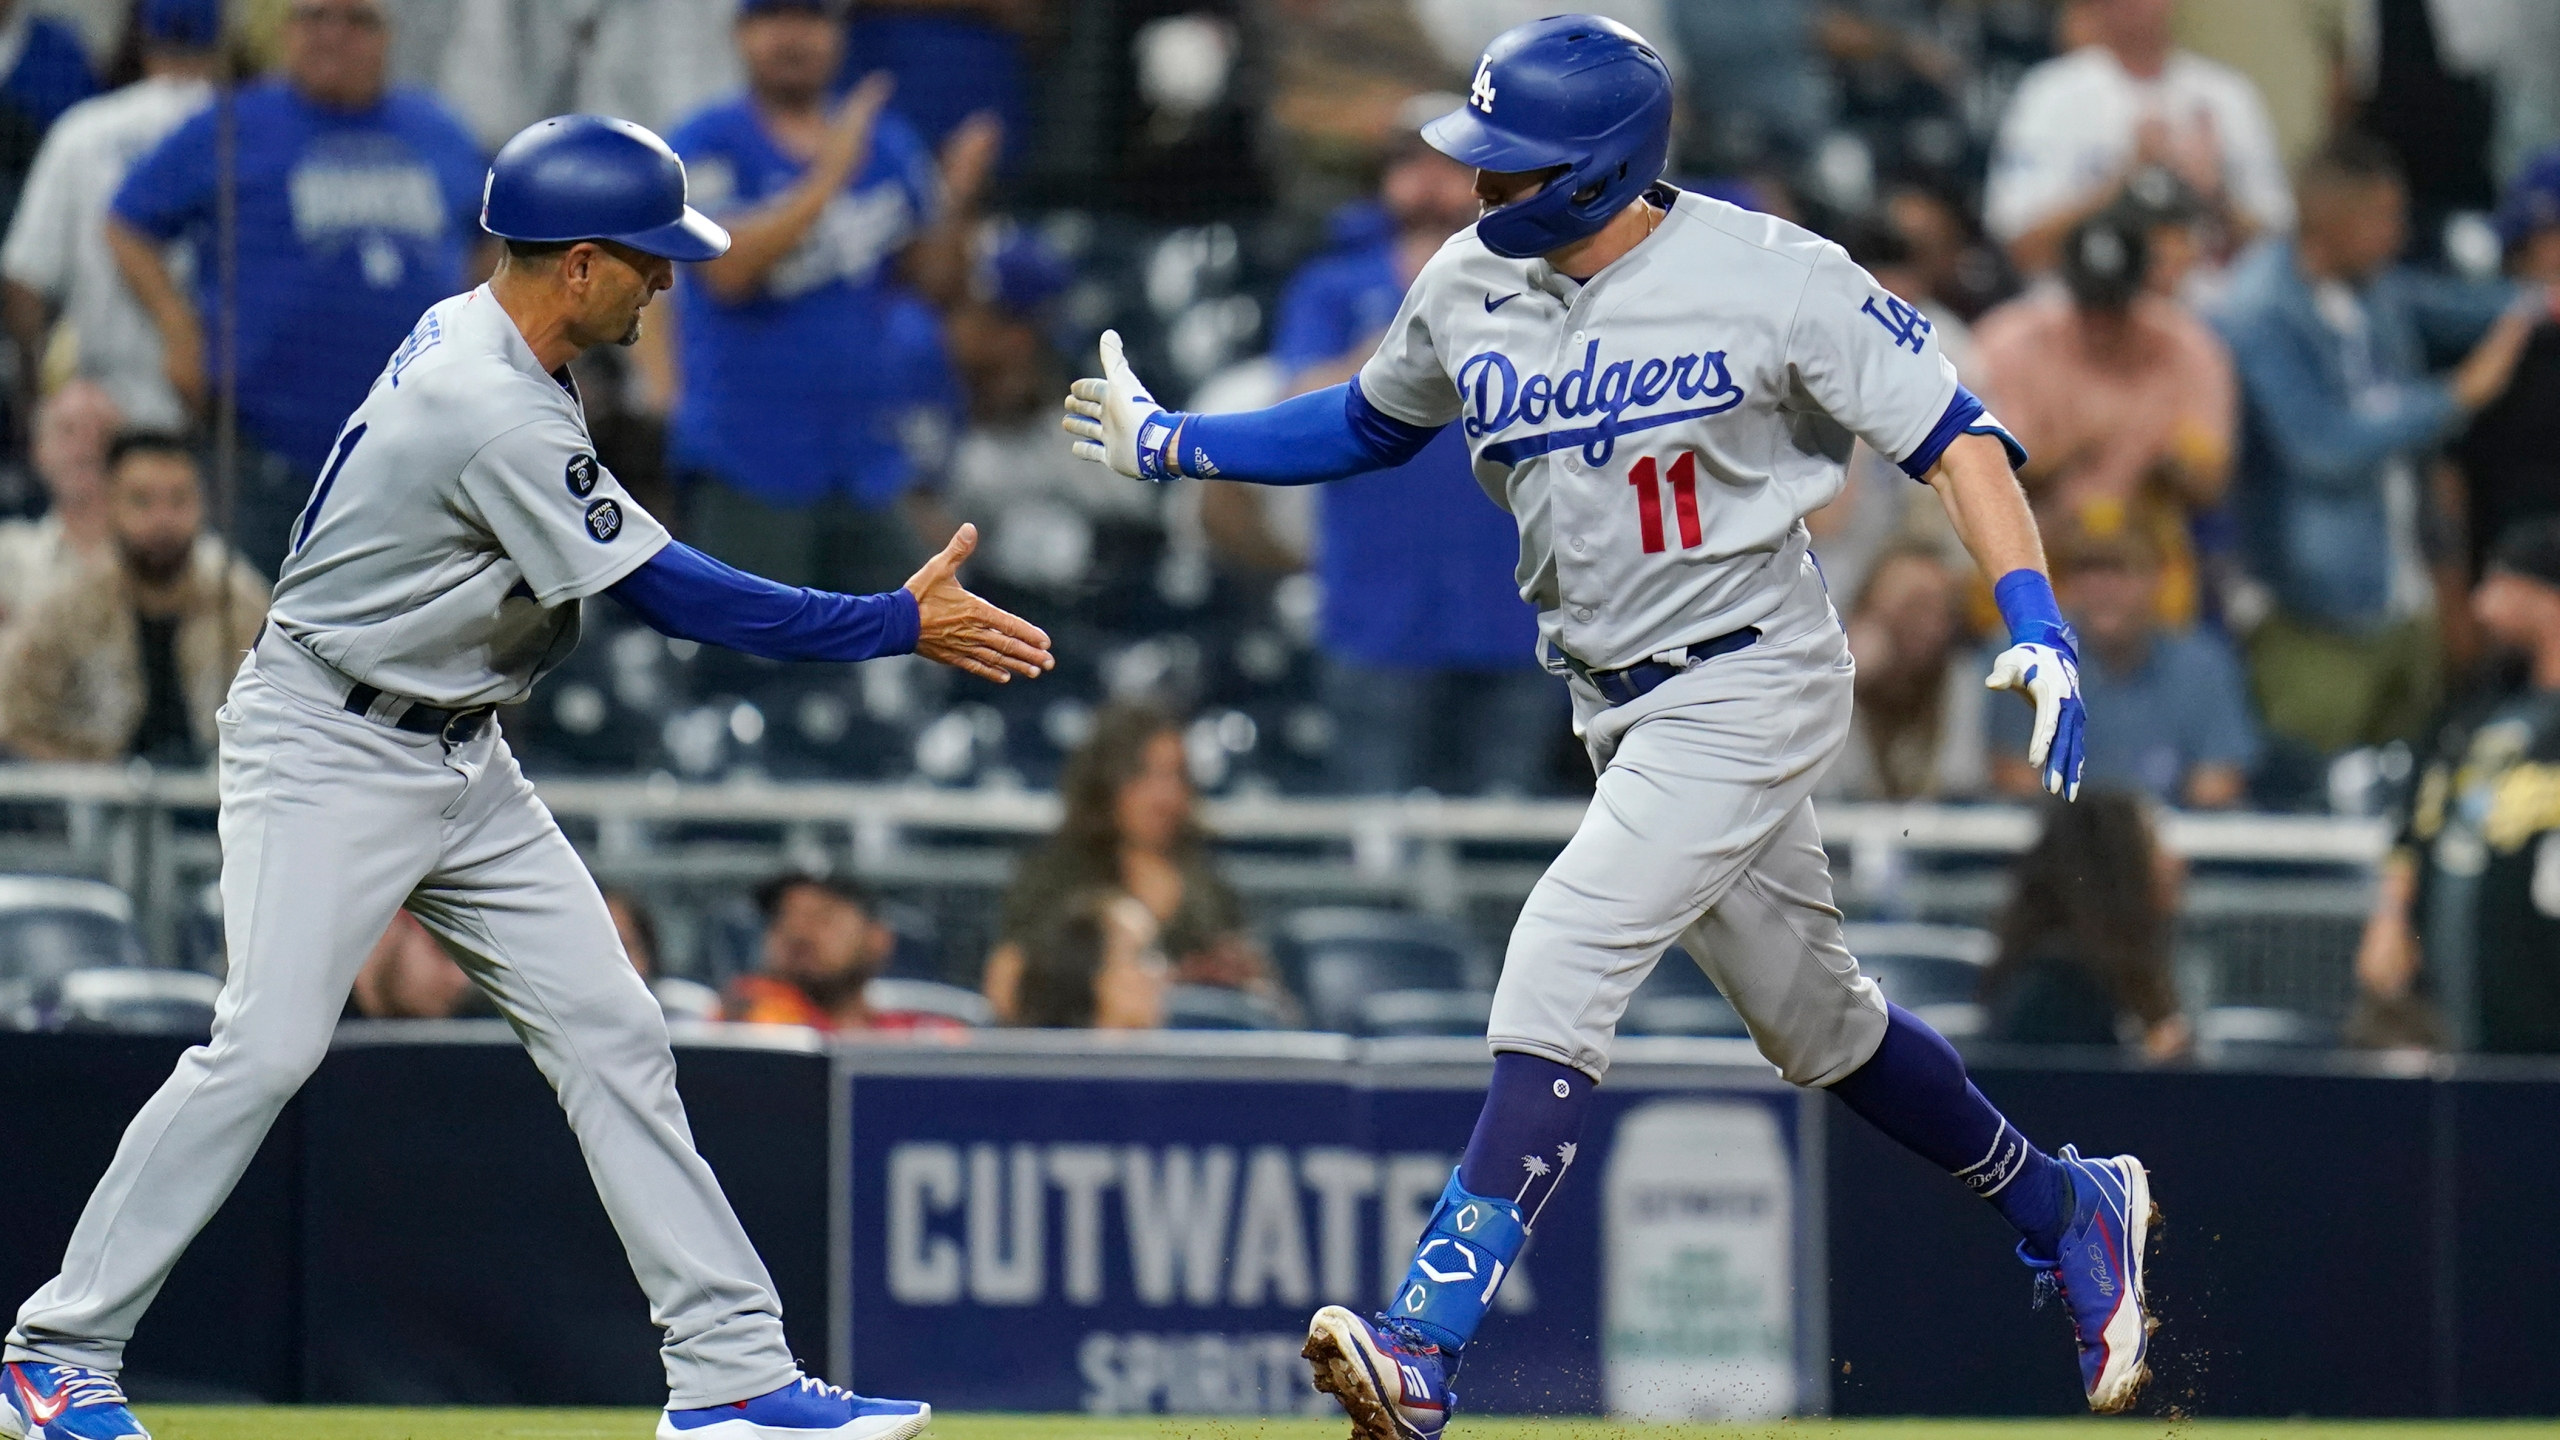 Los Angeles Dodgers' AJ Pollock, right, reacts with third base coach Dino Ebel after hitting a two-run home run during the 16th inning of a baseball game against the San Diego Padres on Aug. 26, 2021, in San Diego. (Gregory Bull/Associated Press)